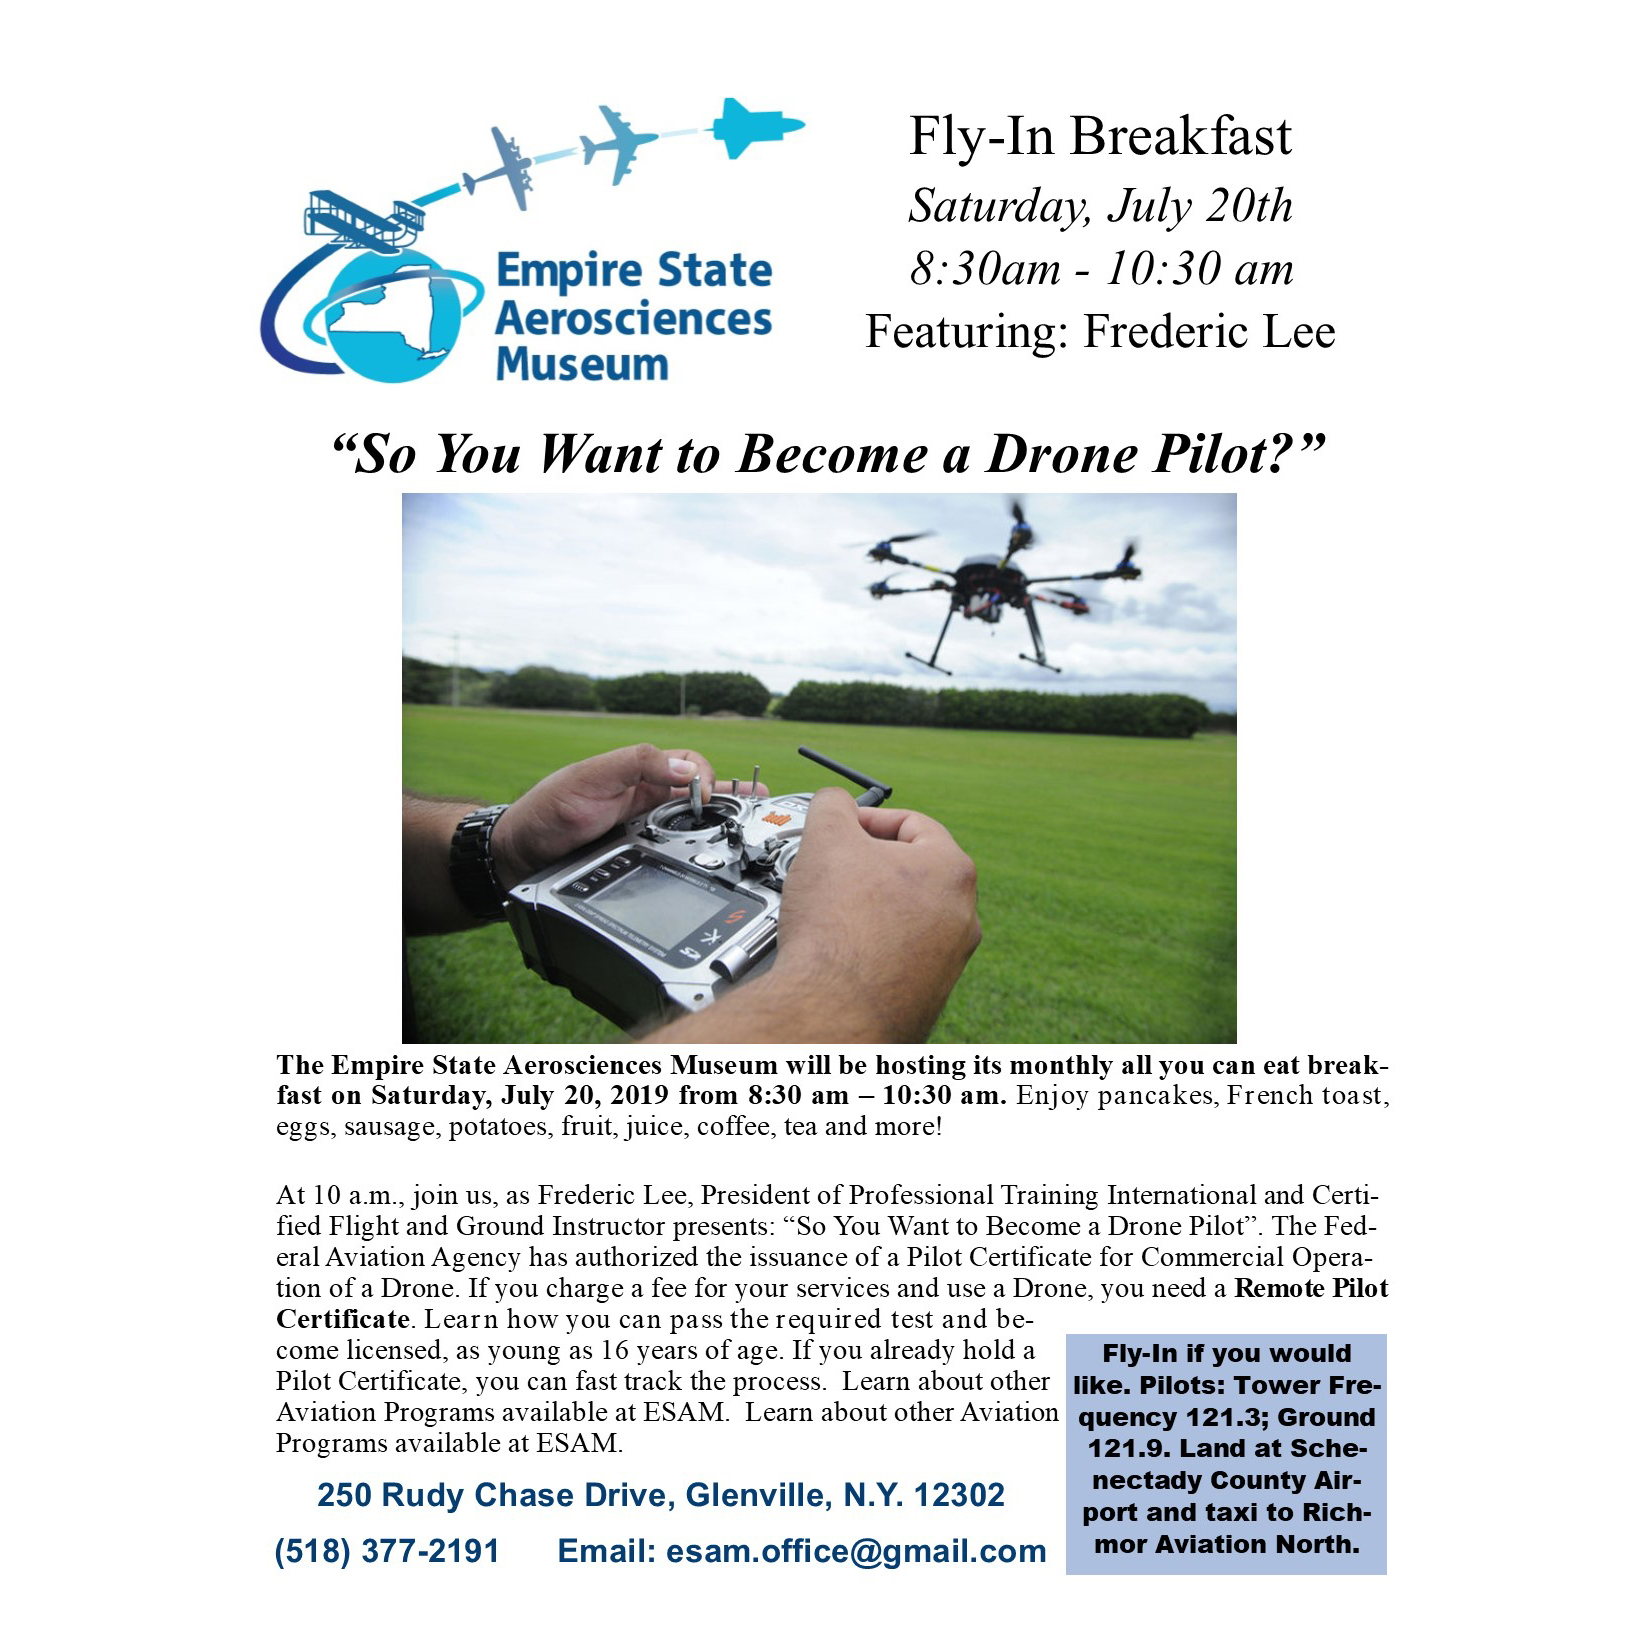 ESAM Fly-in Breakfast - So You Want to Become a Drone Pilot?